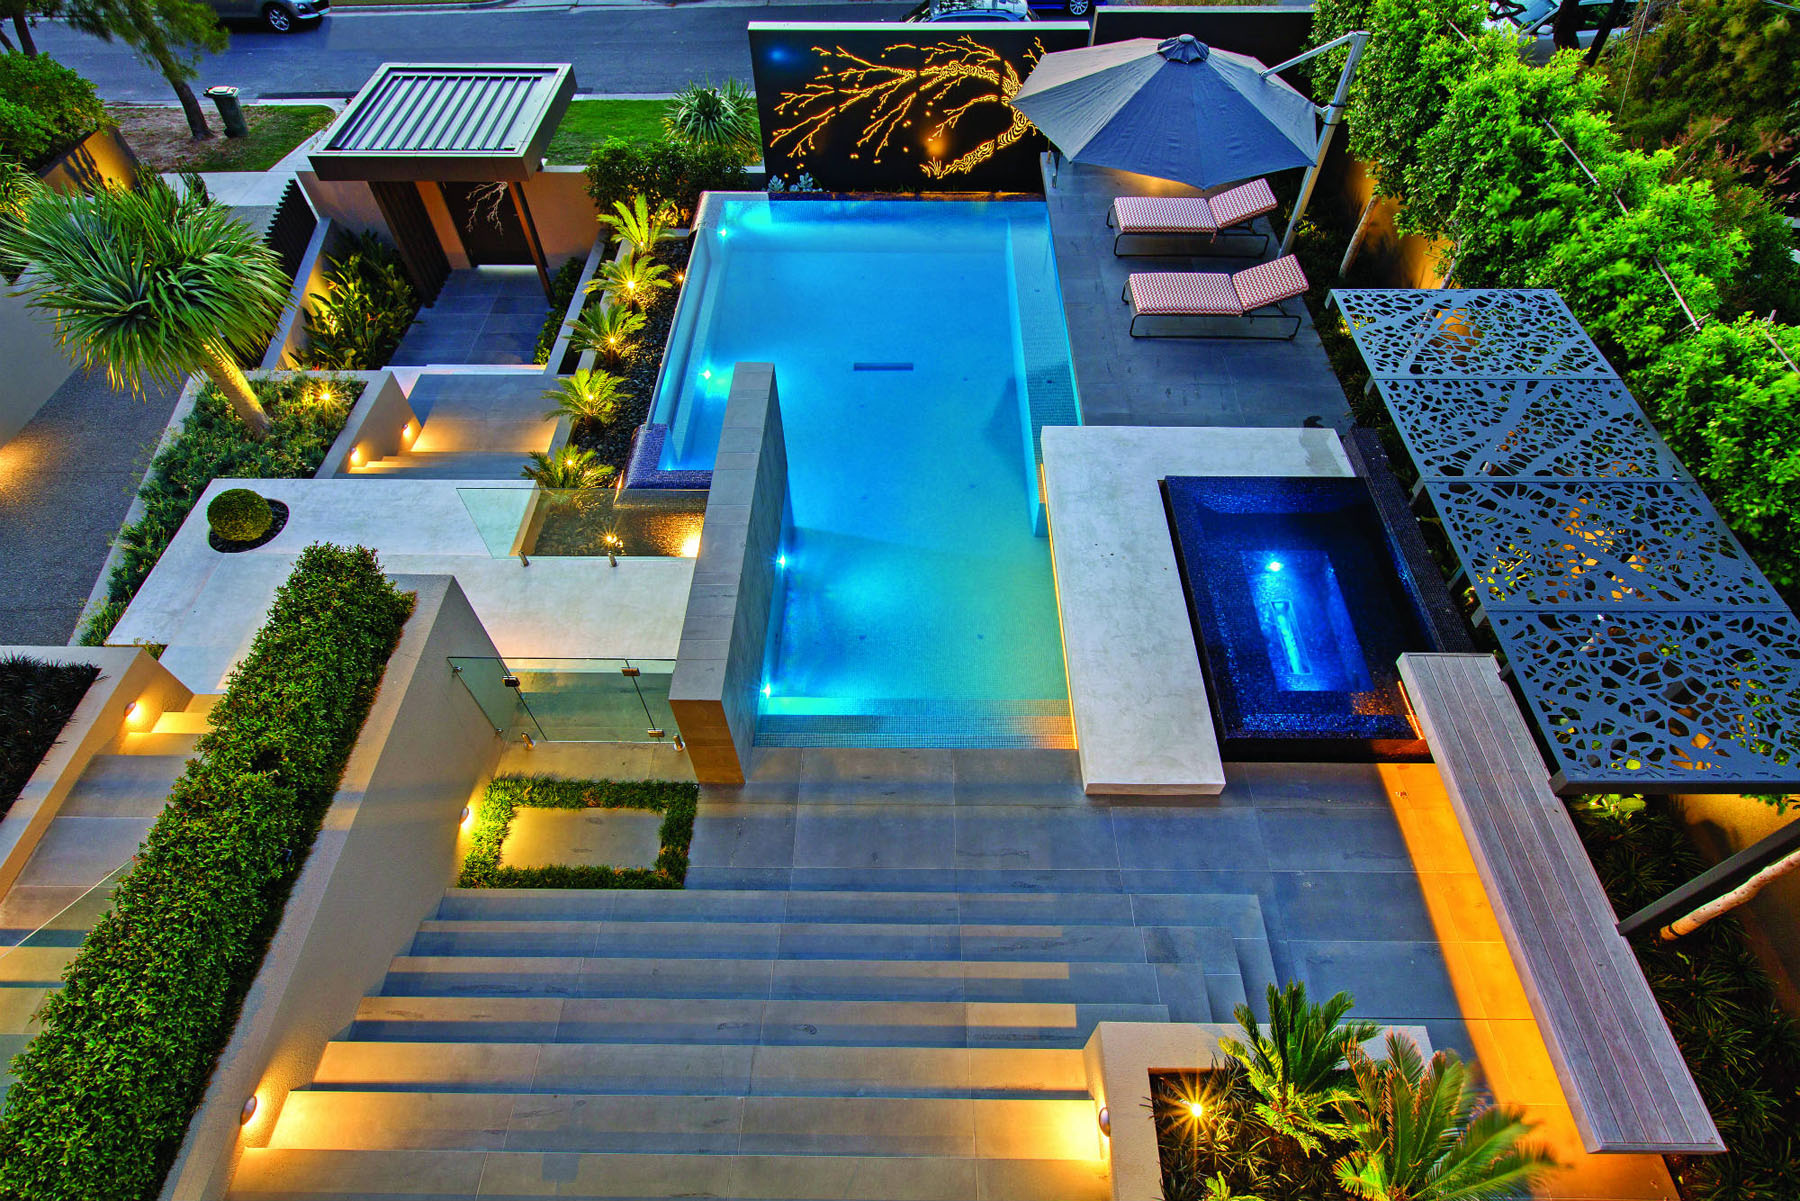 Resort Style Home Garden with Swimming Pool